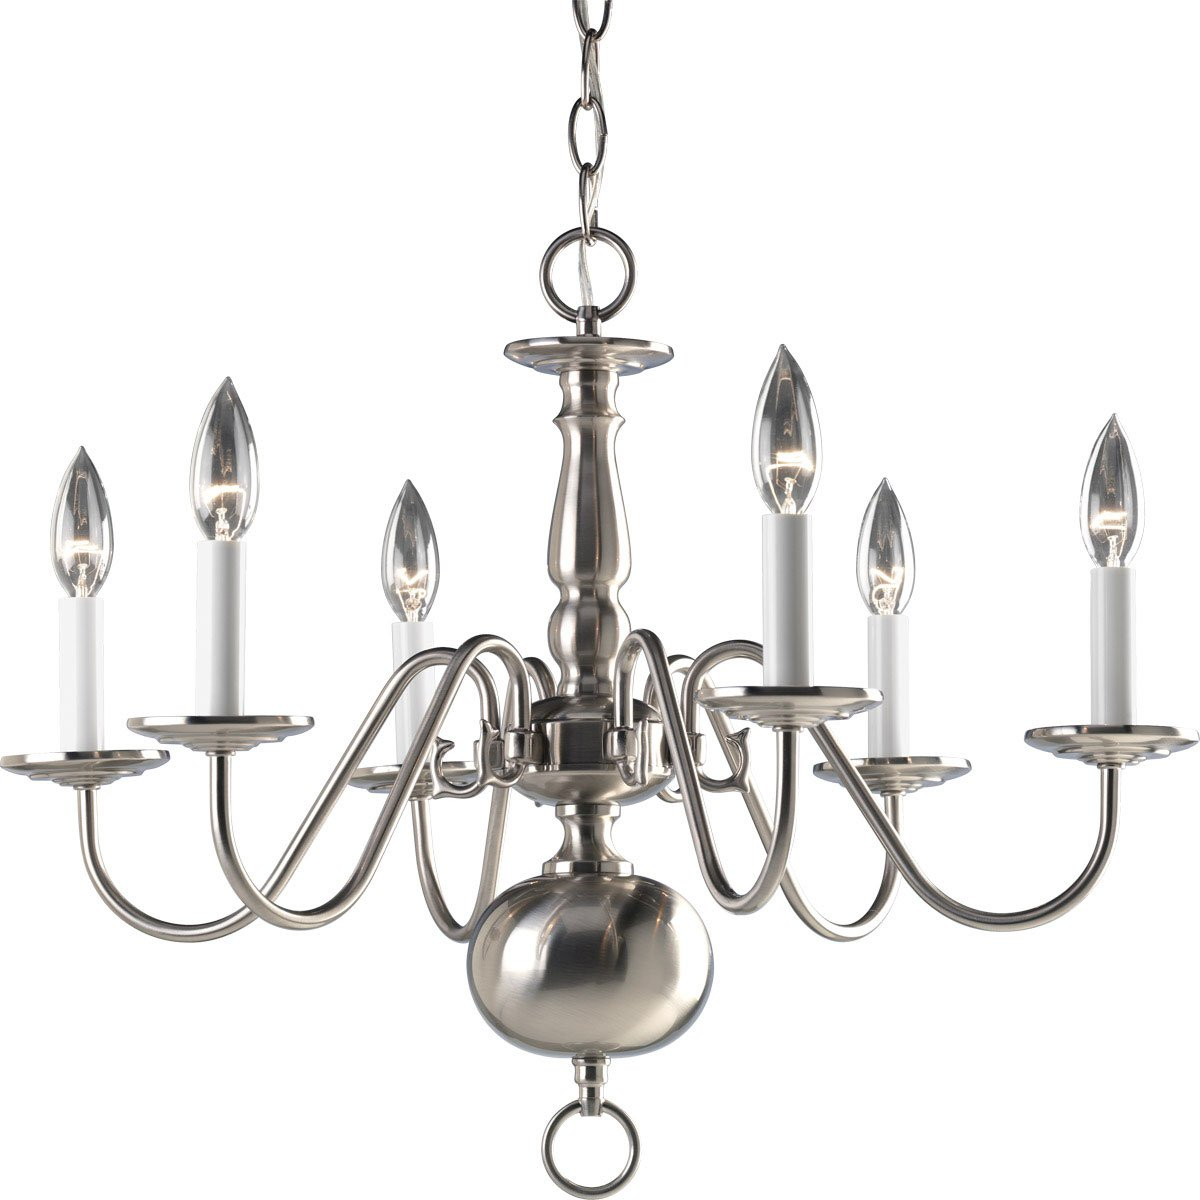 Progress lighting p4356 10 6 light americana chandelier with progress lighting p4356 10 6 light americana chandelier with delicate arms and decorative center column and candelabra lamps polished brass white column arubaitofo Images